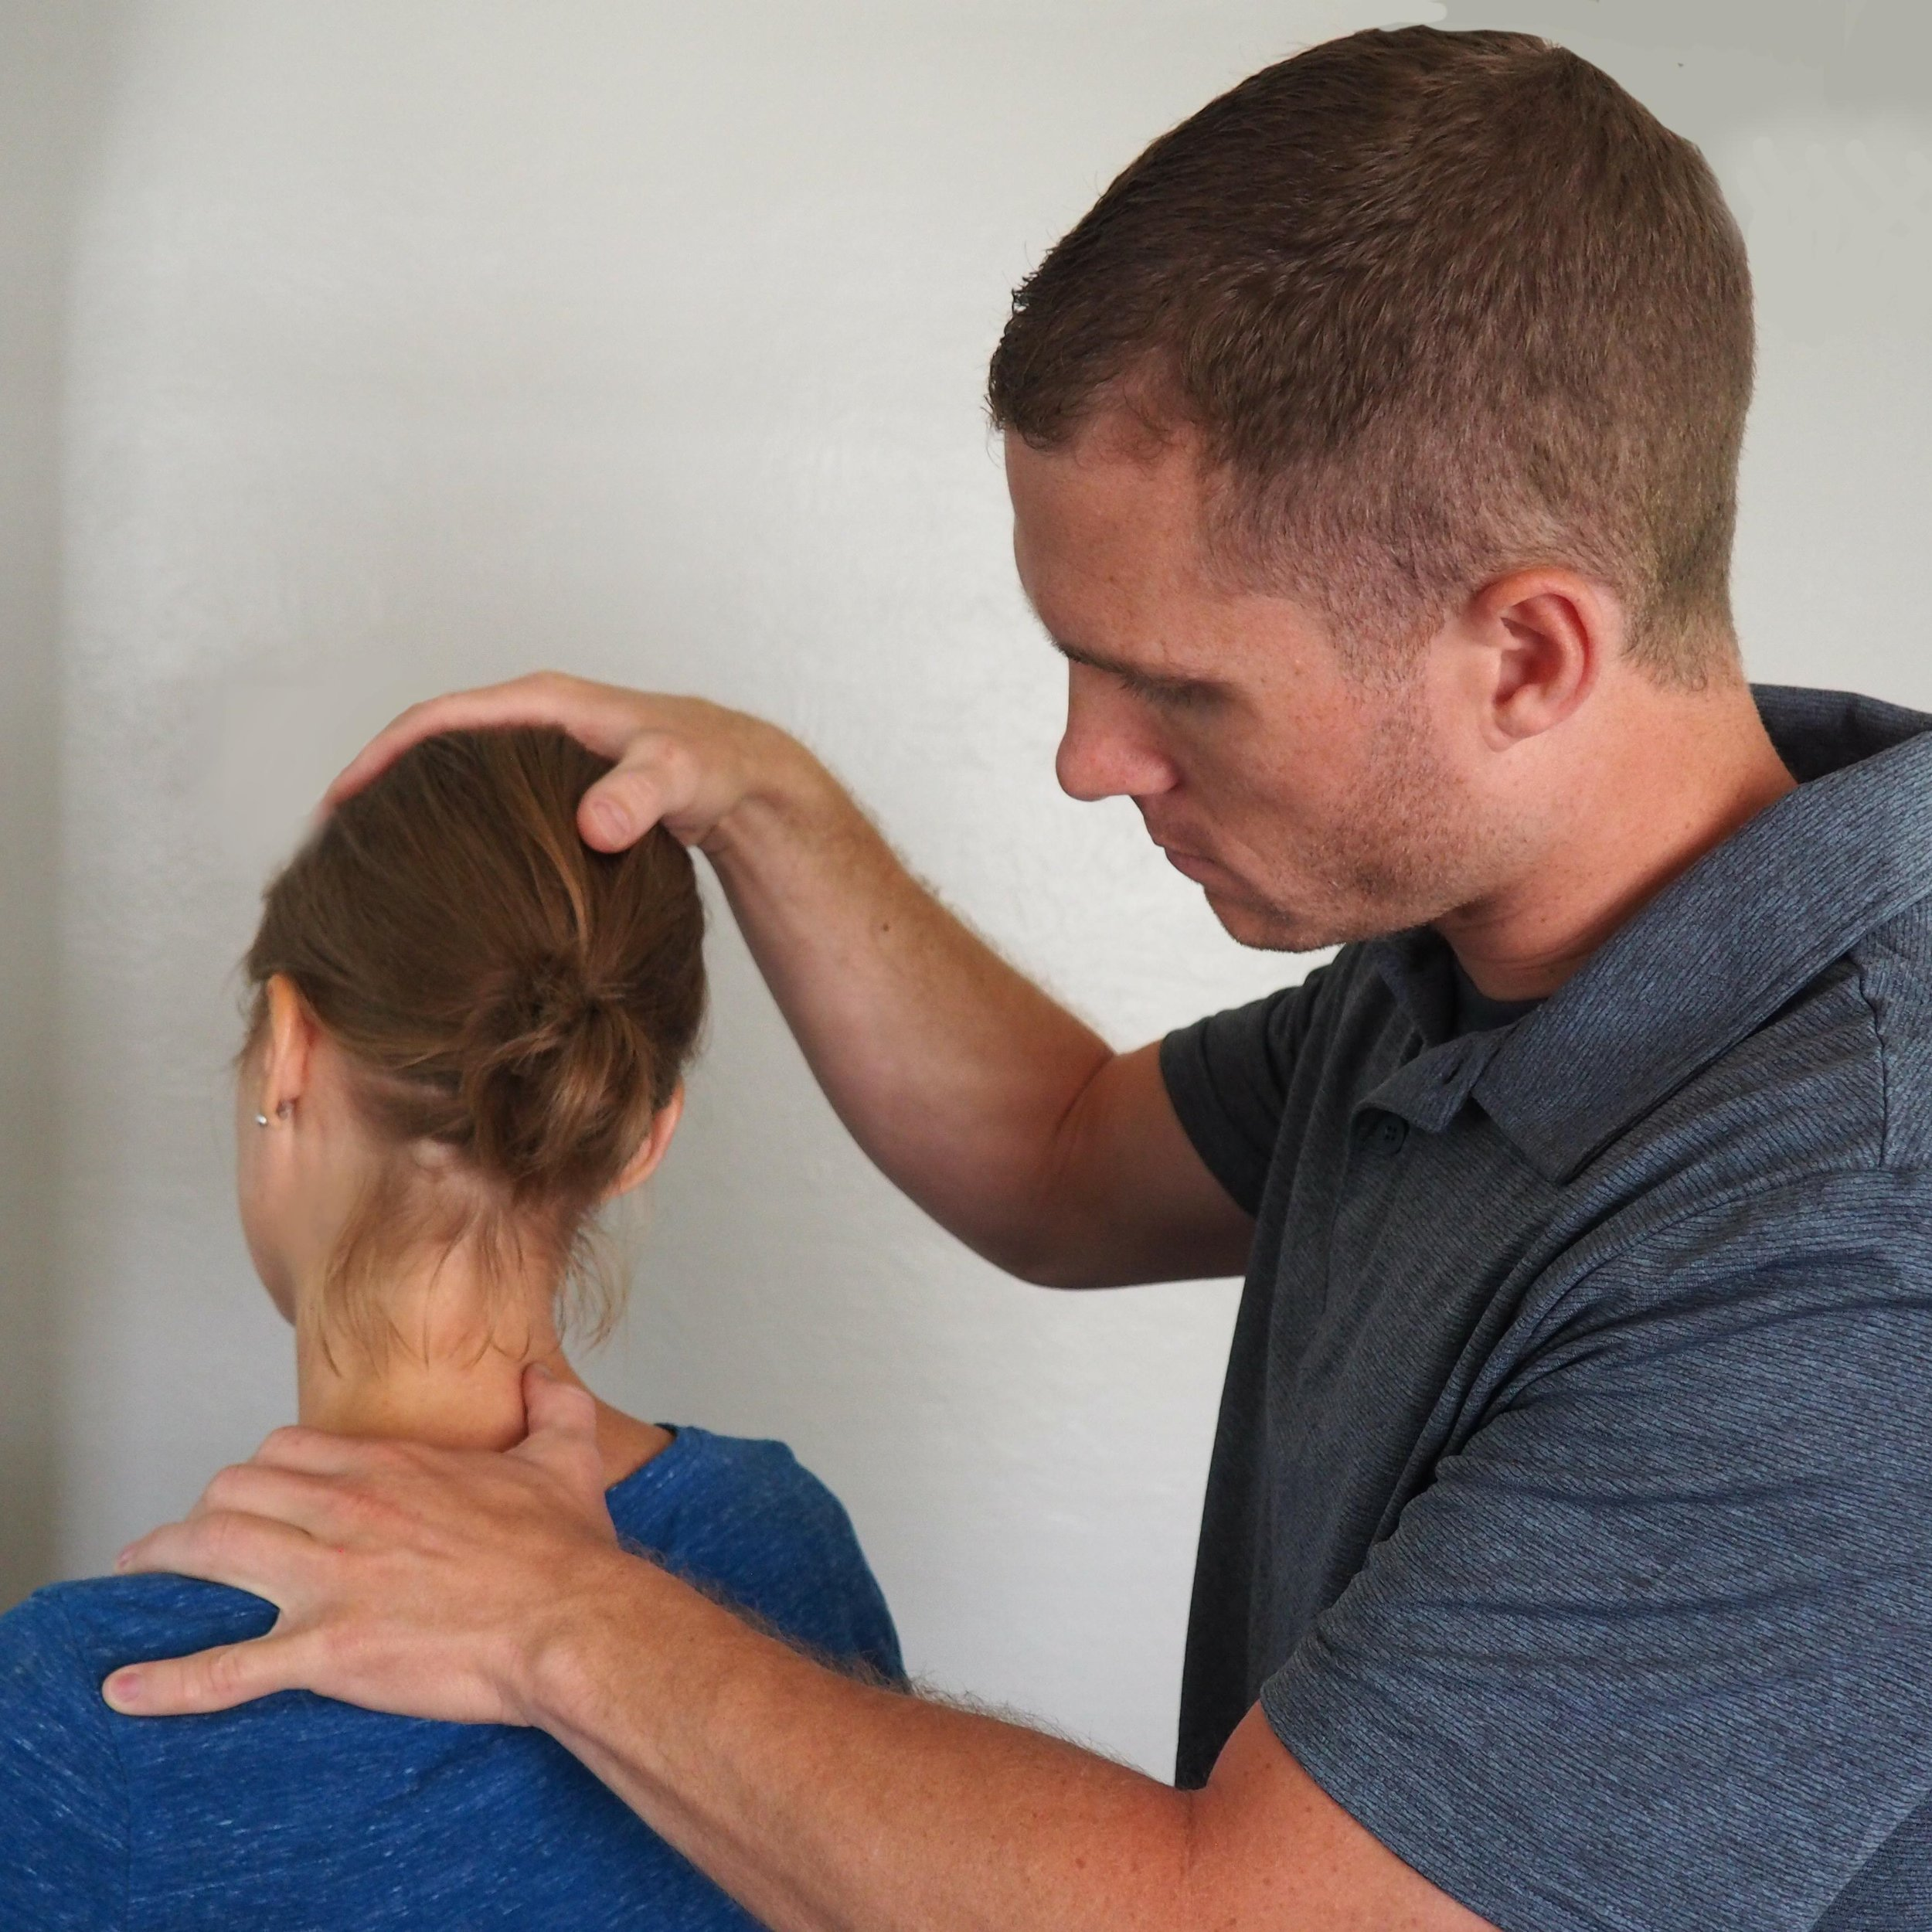 Chiropractic Adjustment - Chiropractic manipulation helps create movement in stuck joints to restore full range of motion while optimizing the function of the muscles and nerves in the region.